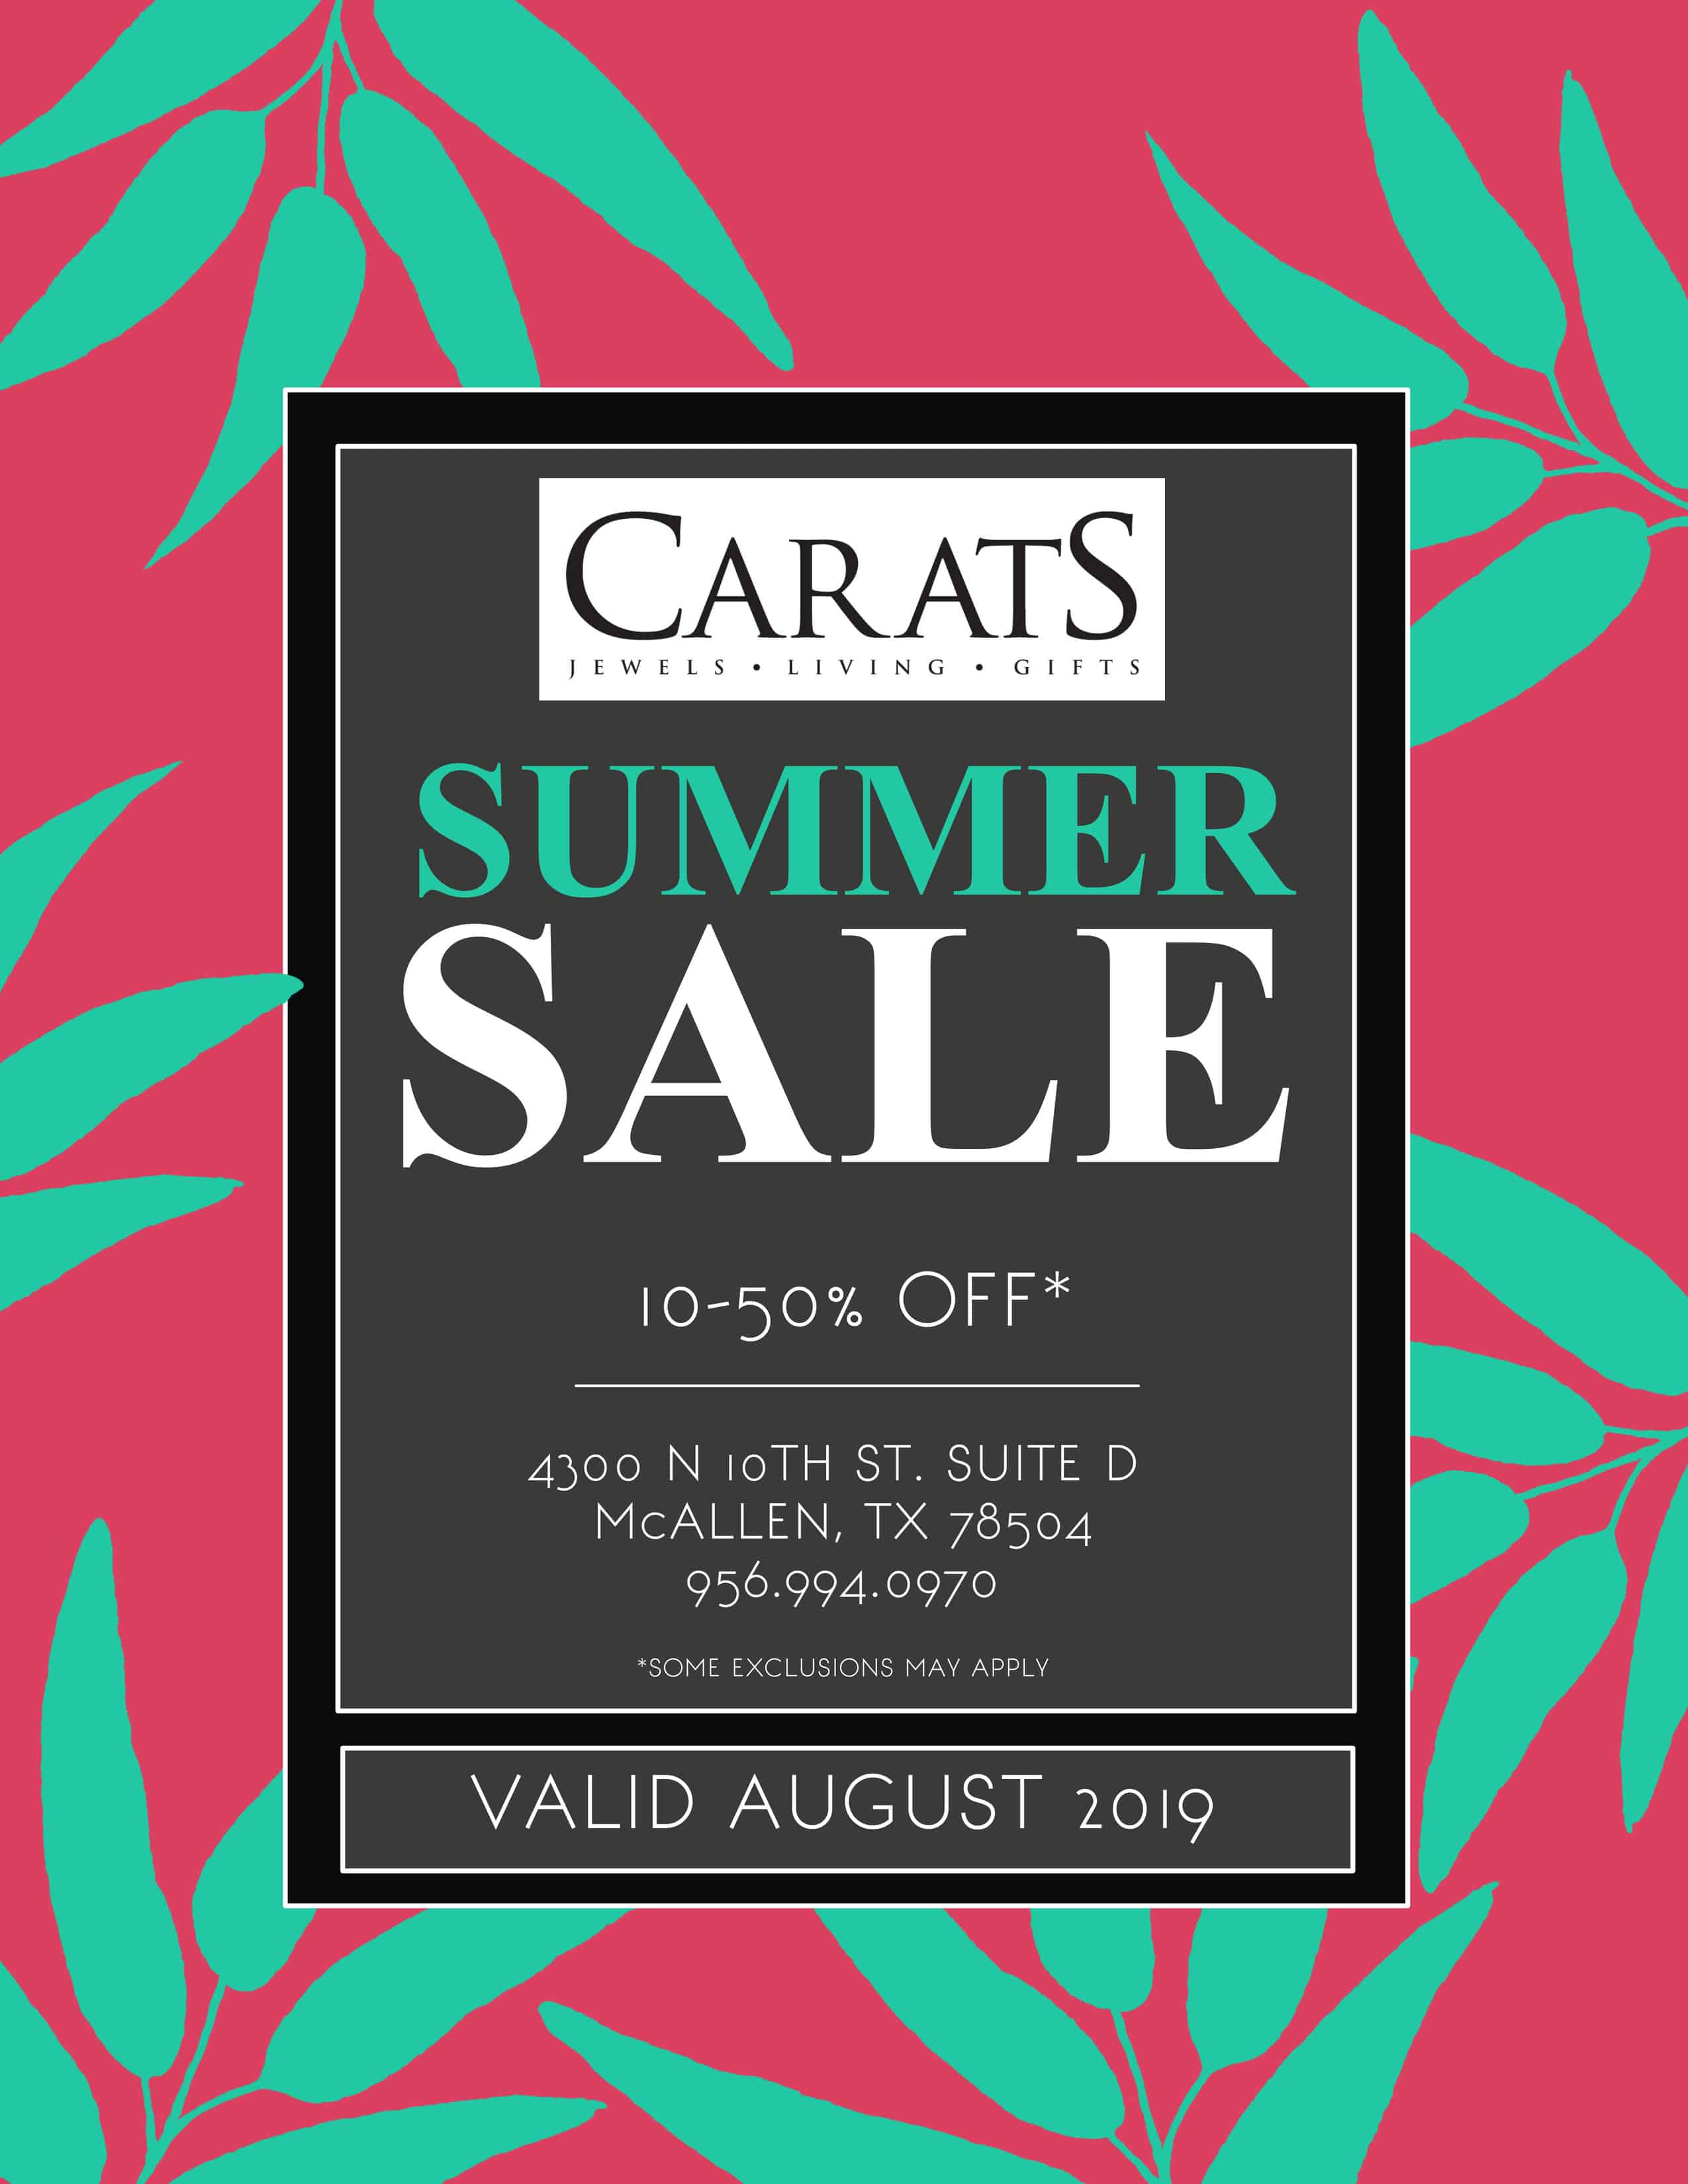 Carats Summer Sale is here!